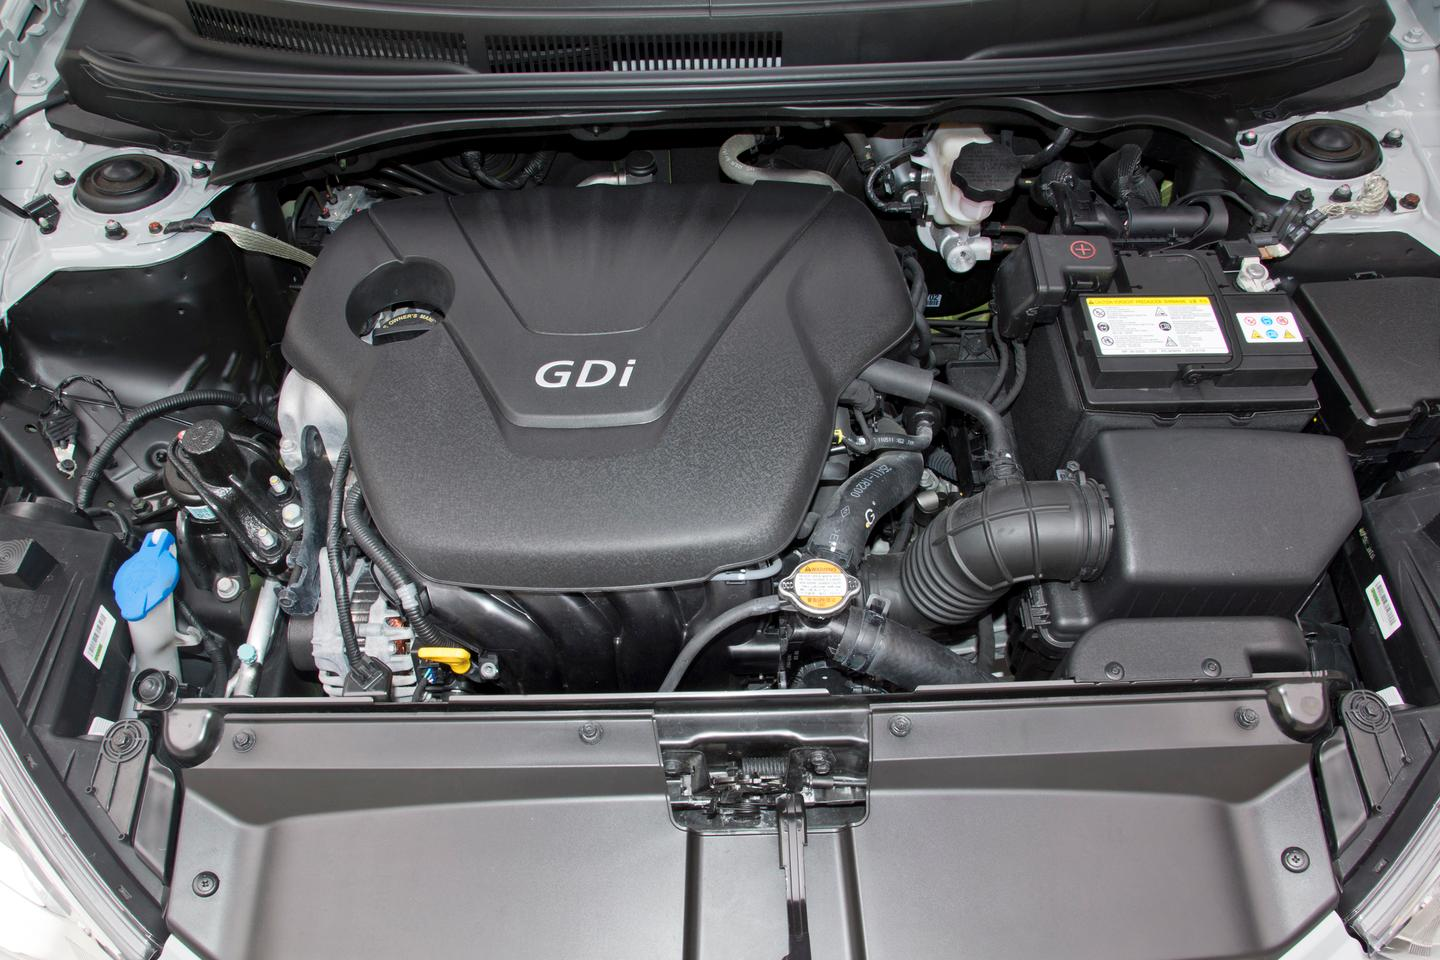 The Veloster RE:MIX 1.6-liter engine